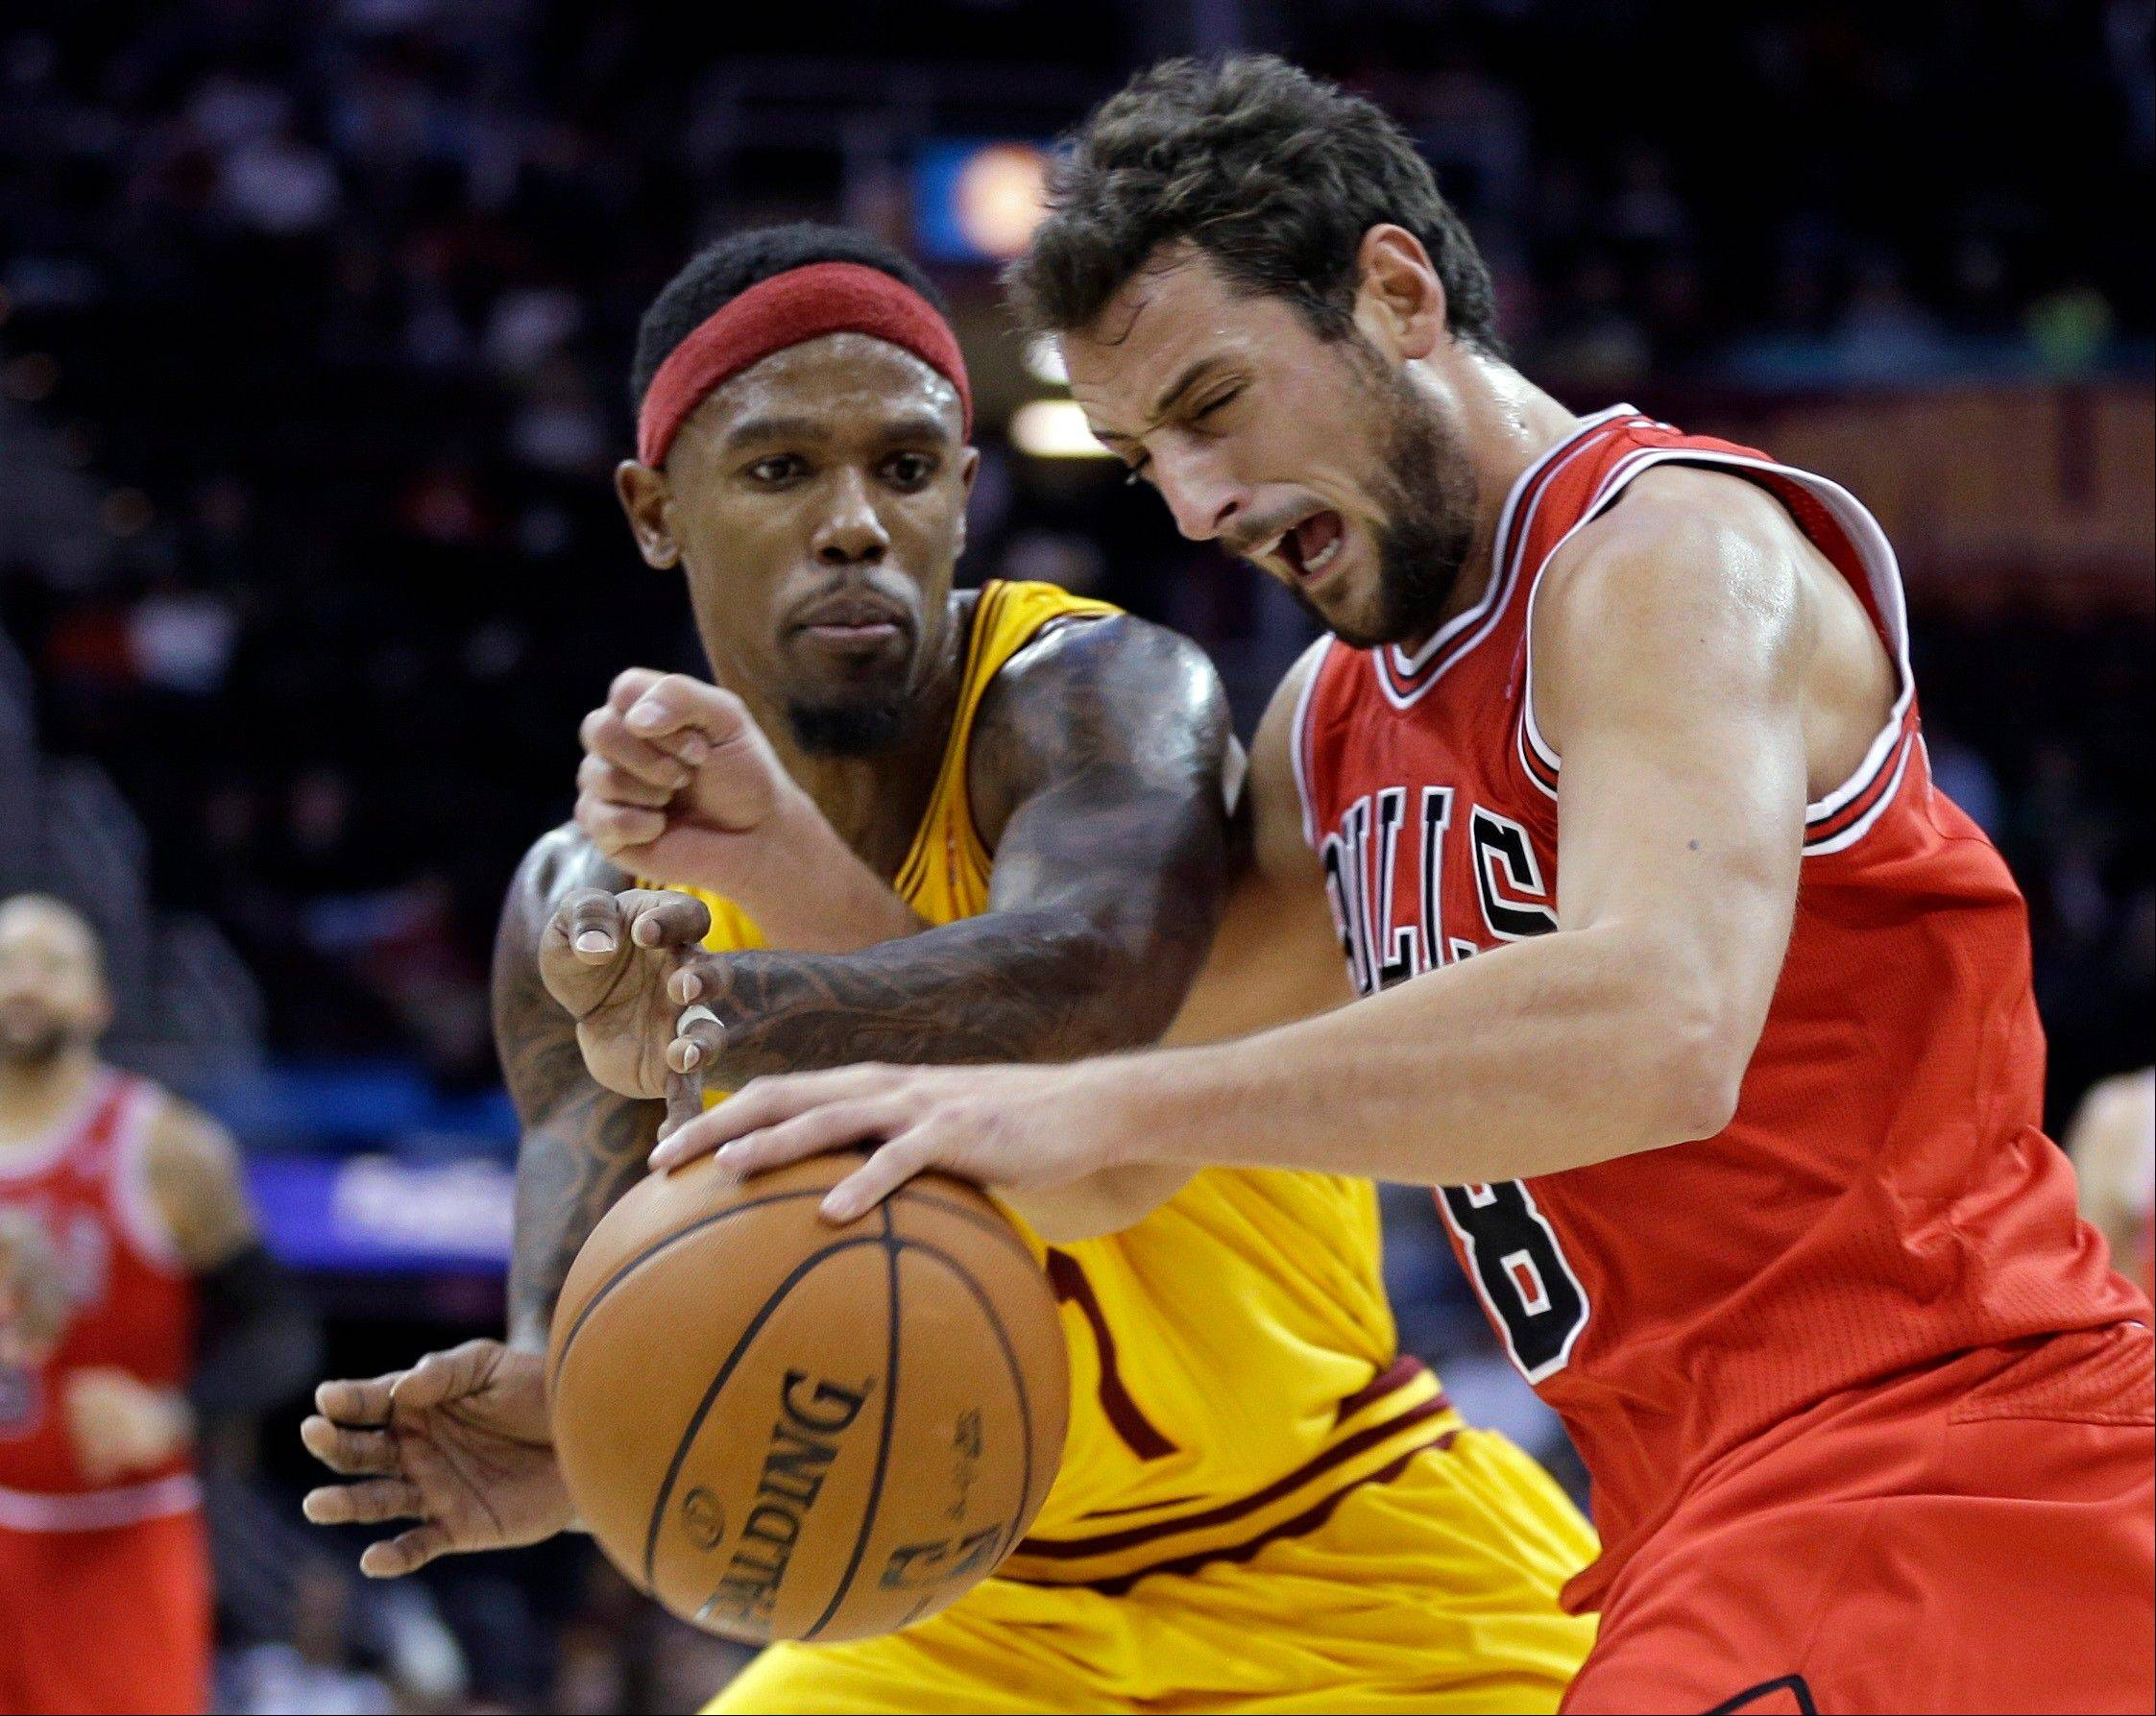 Bulls guard Marco Belinelli, seen here Friday against Cleveland, scored 13 points in Saturday's loss to New Orleans.